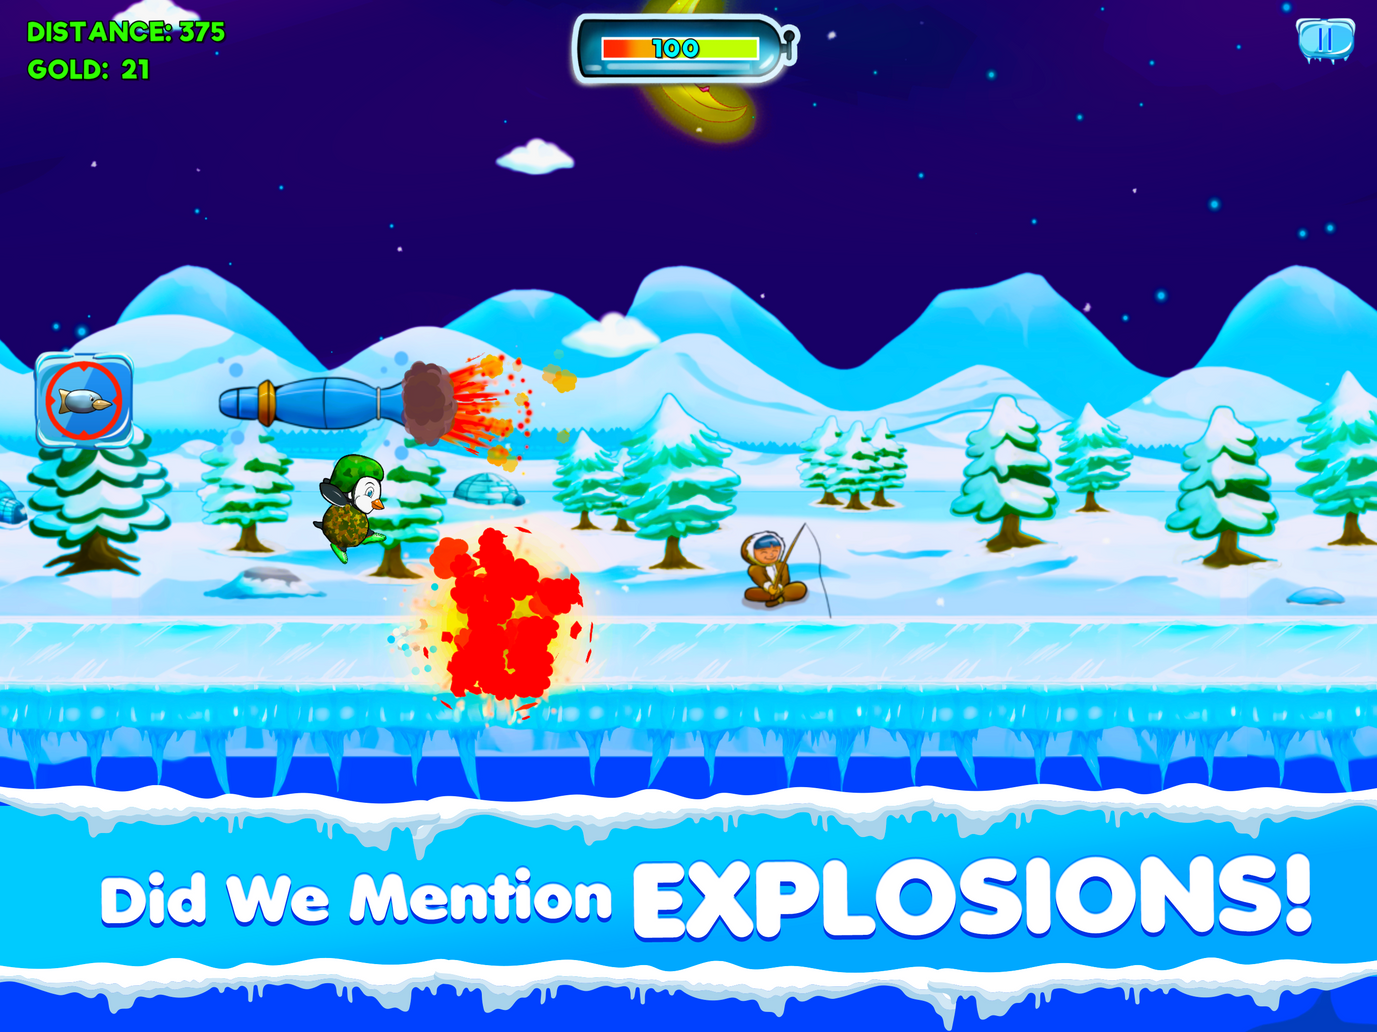 Did we mention explosions?